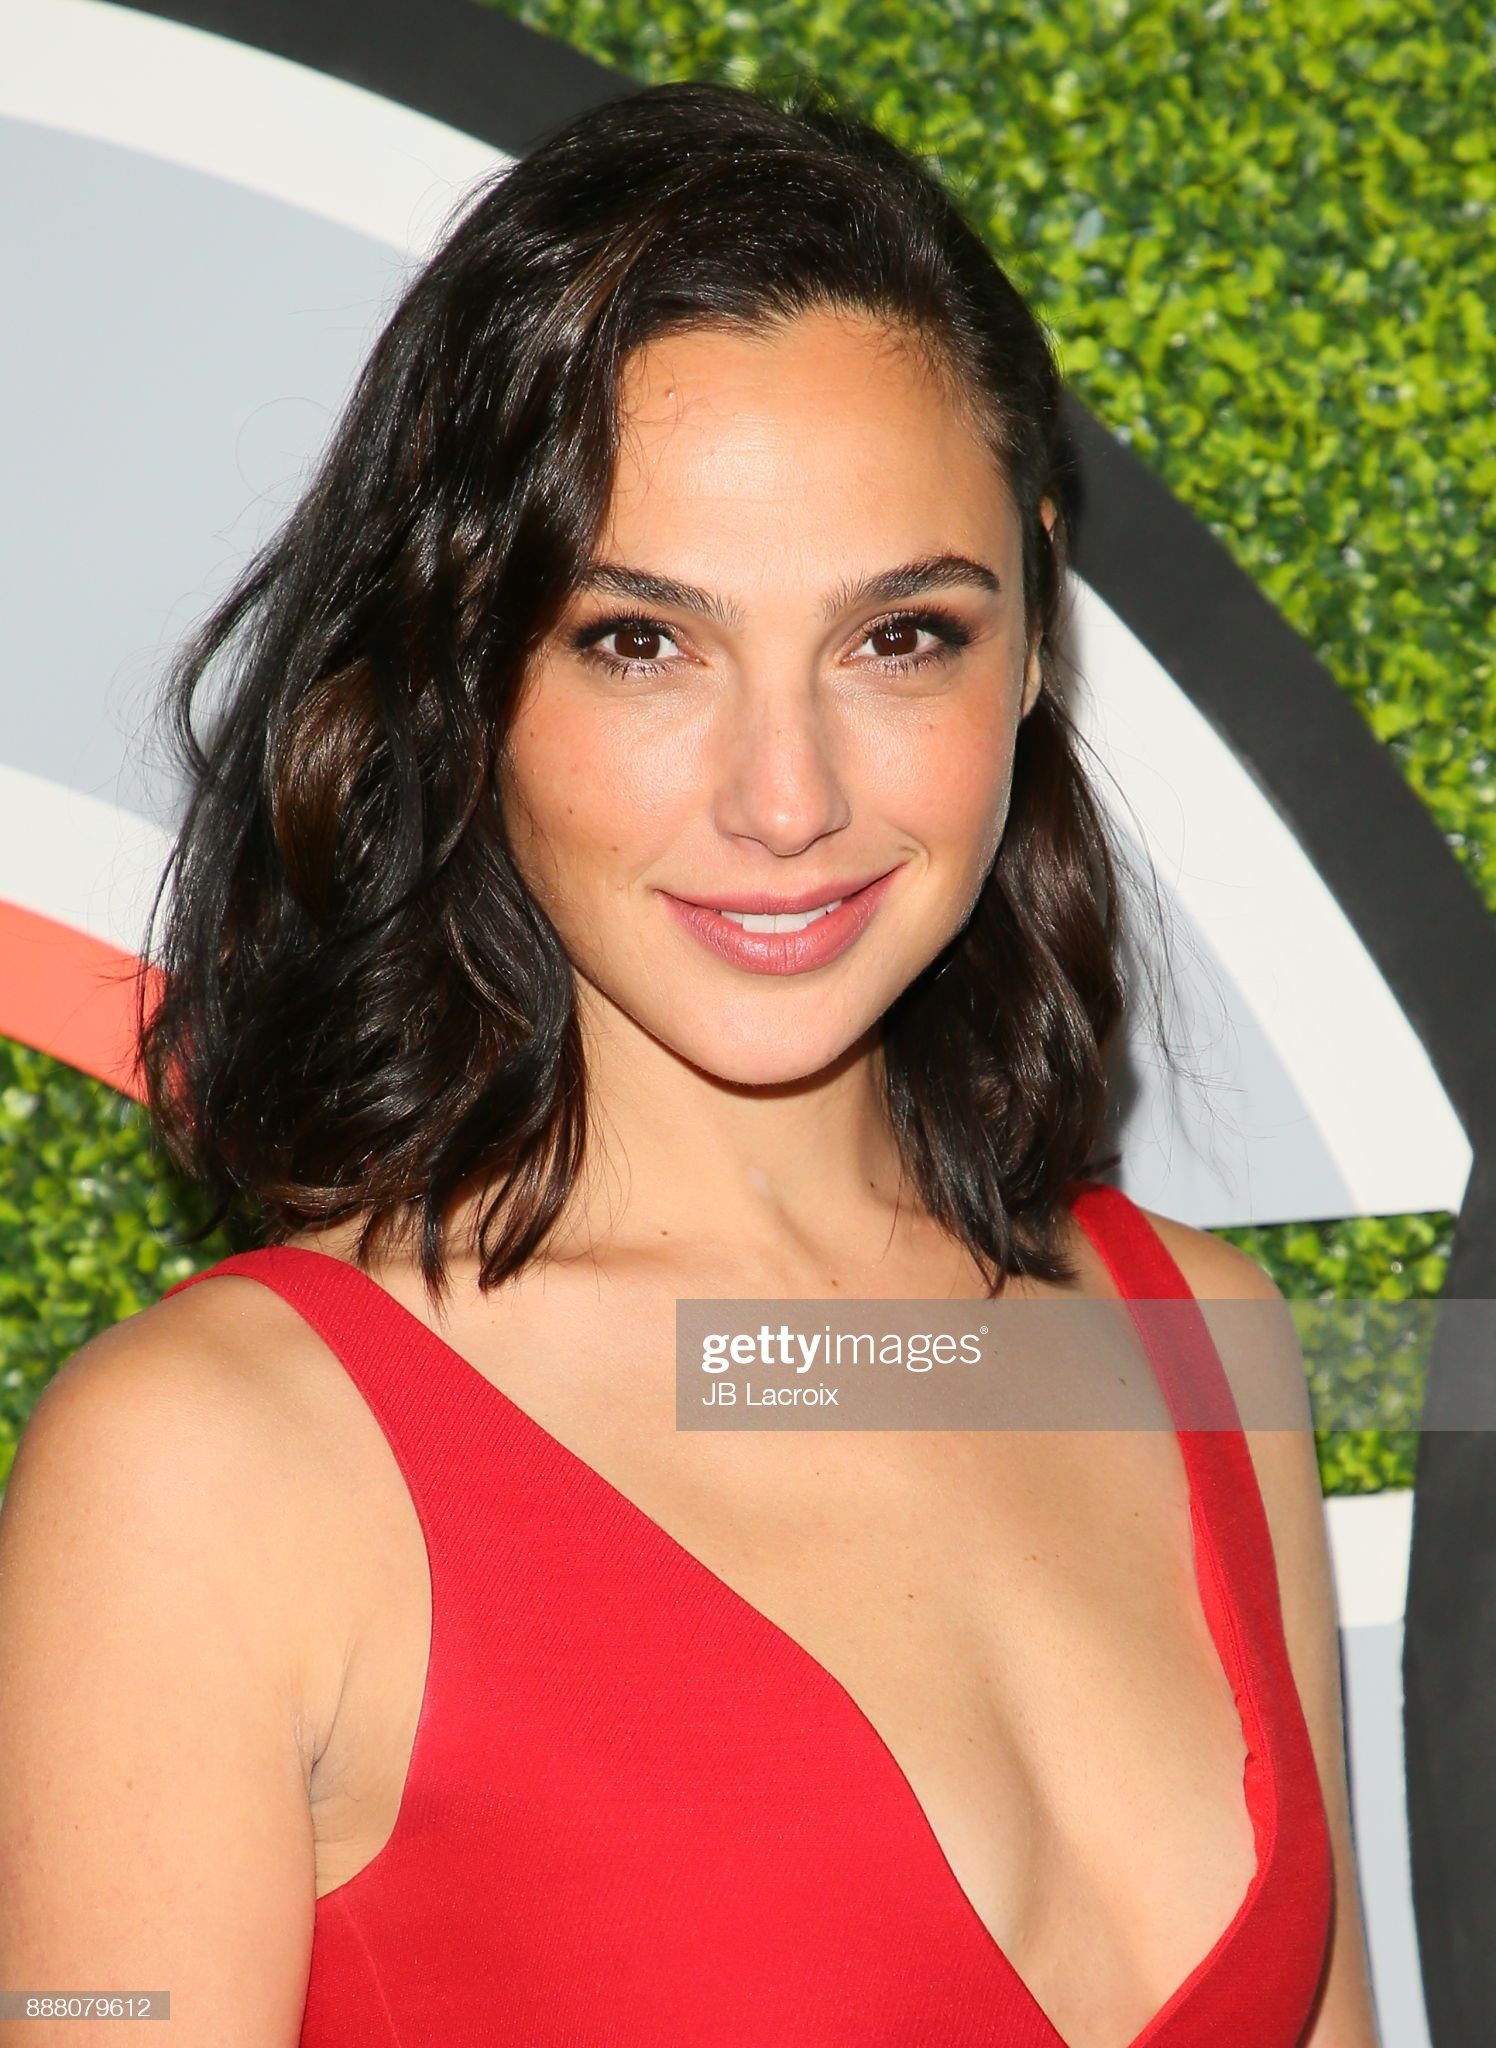 Top 80 Famosas Foroalturas - Página 2 Gal-gadot-attends-the-2017-gq-men-of-the-year-party-on-december-07-picture-id888079612?s=2048x2048